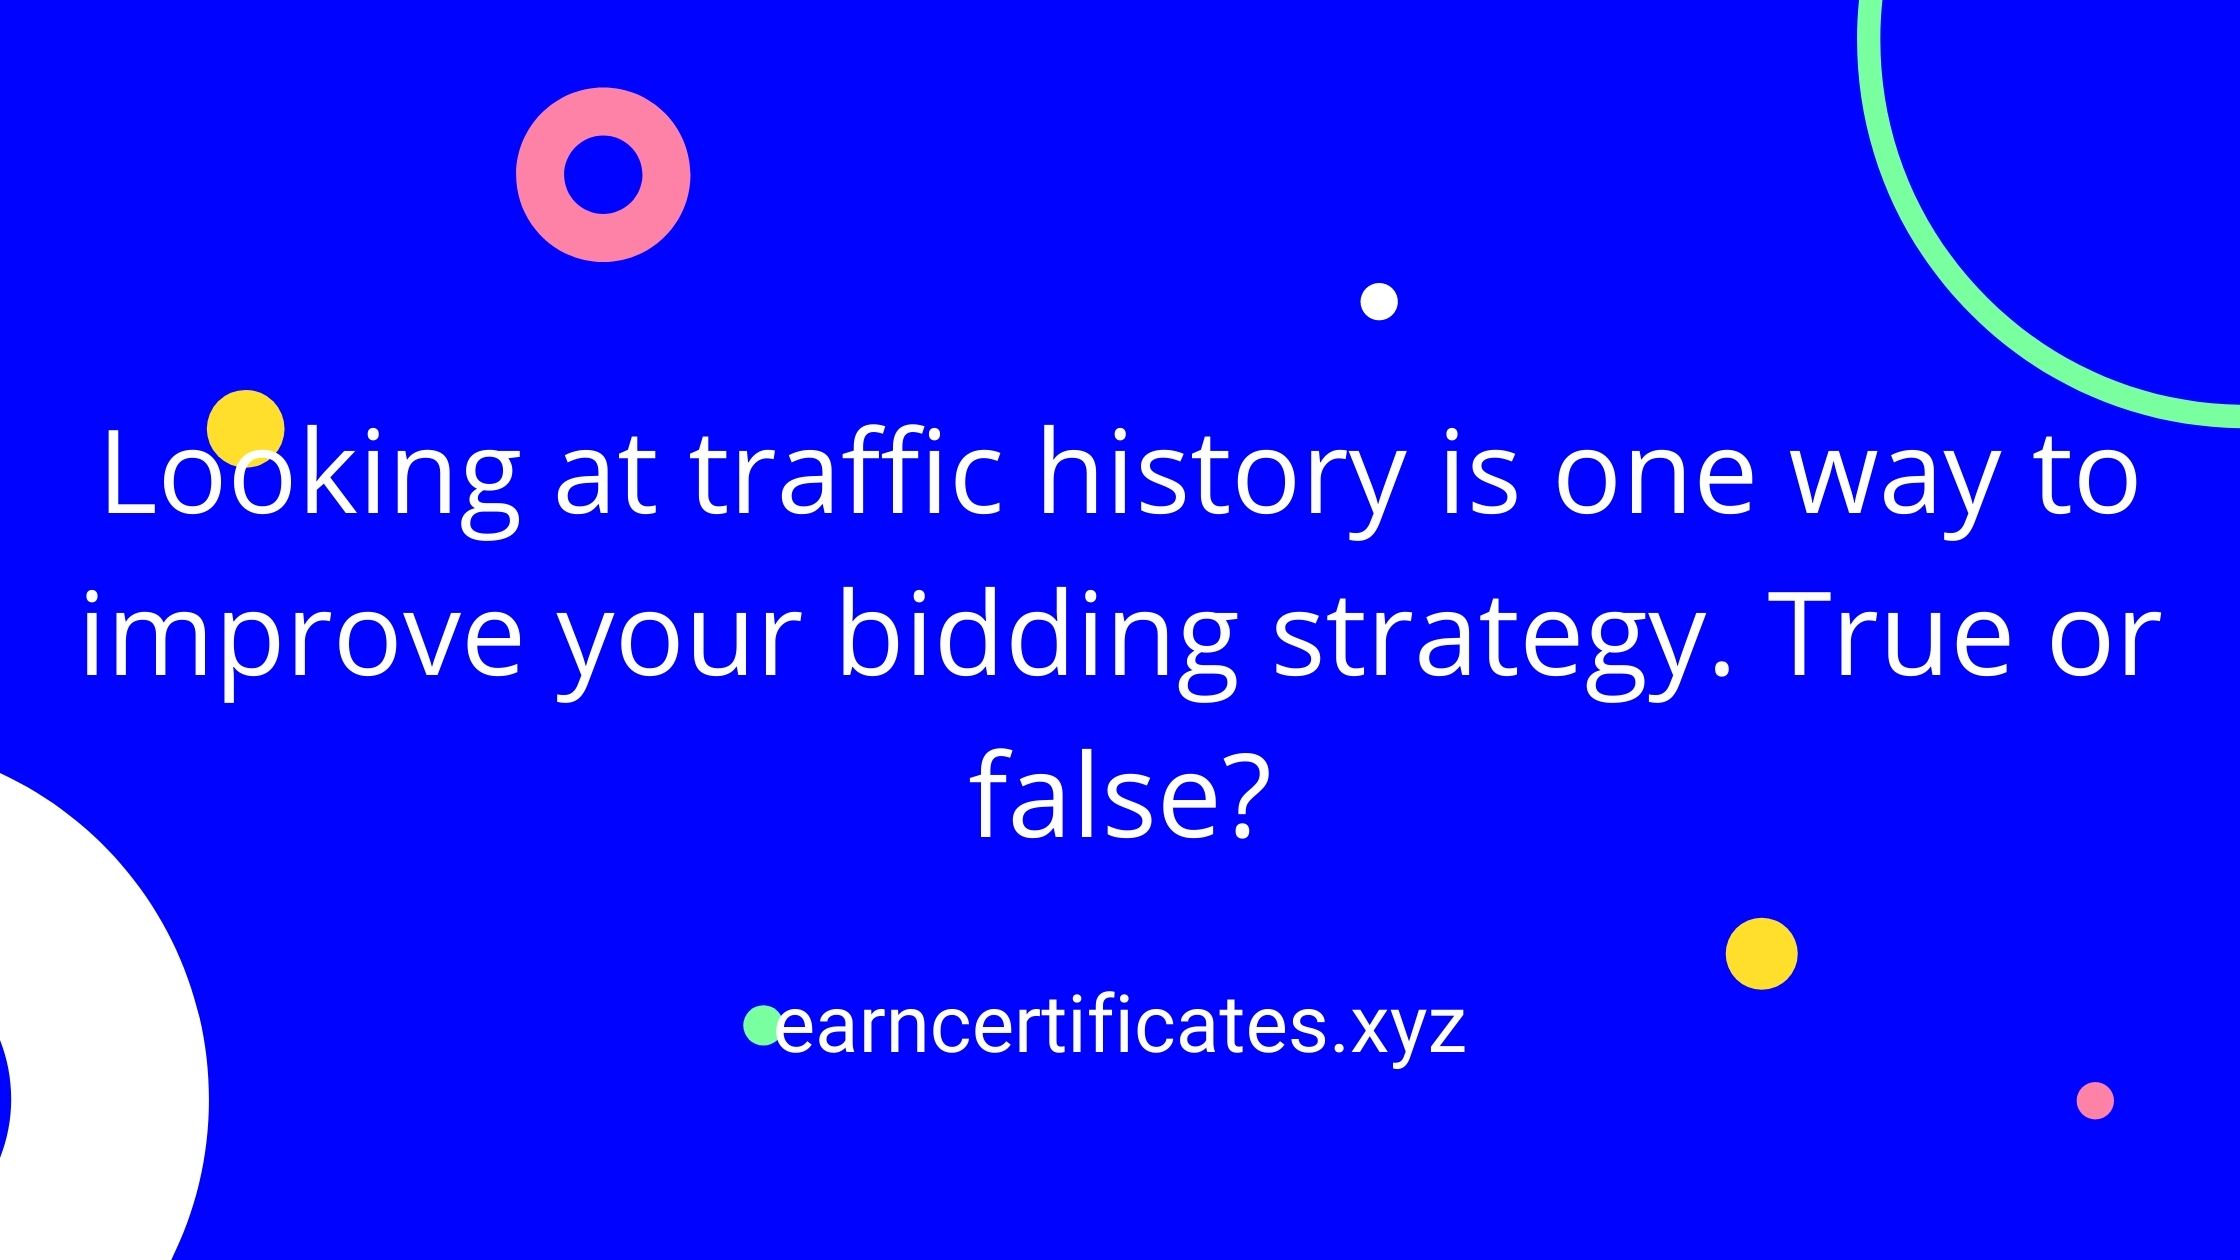 Looking at traffic history is one way to improve your bidding strategy. True or false?